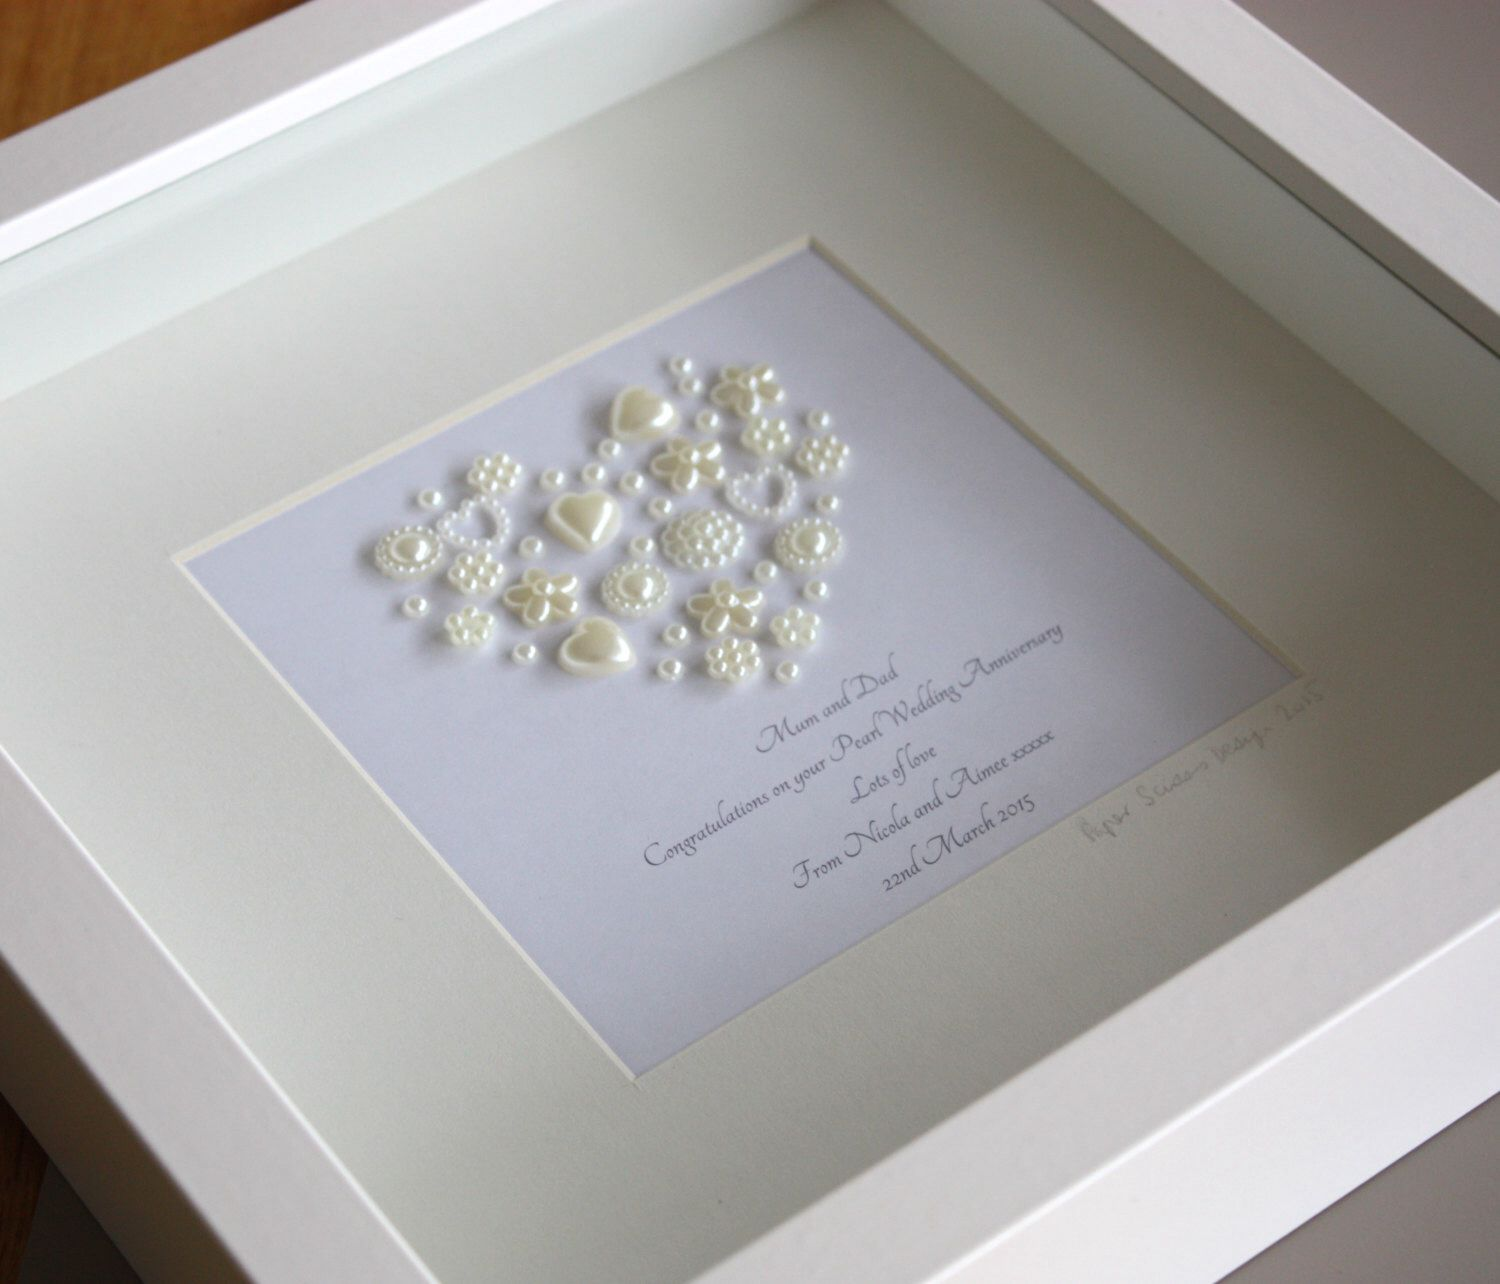 30th Wedding Anniversary Gifts For Husband: Pin By Jackie Dunne On Framed